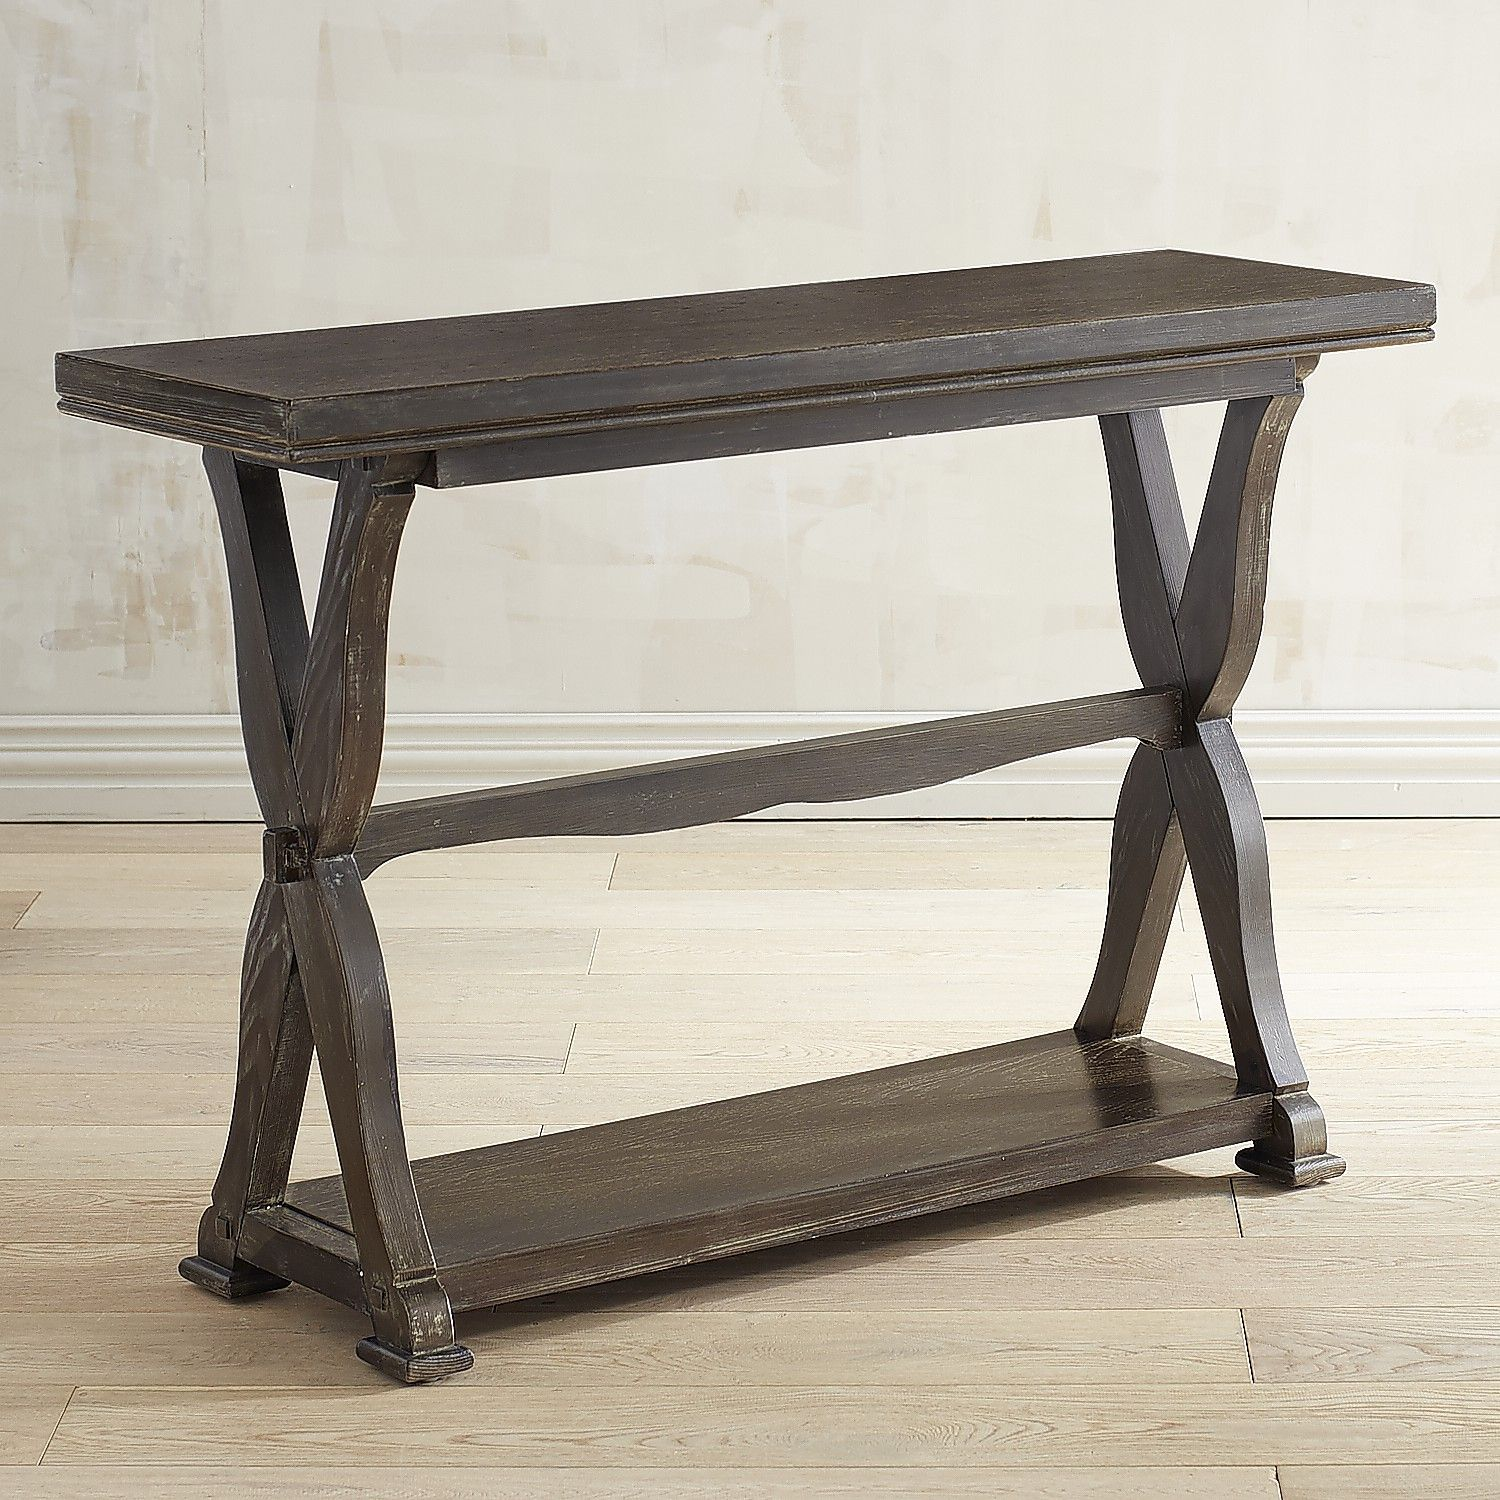 Rayne gray washed console table grey wash and products rayne gray washed console table geotapseo Choice Image